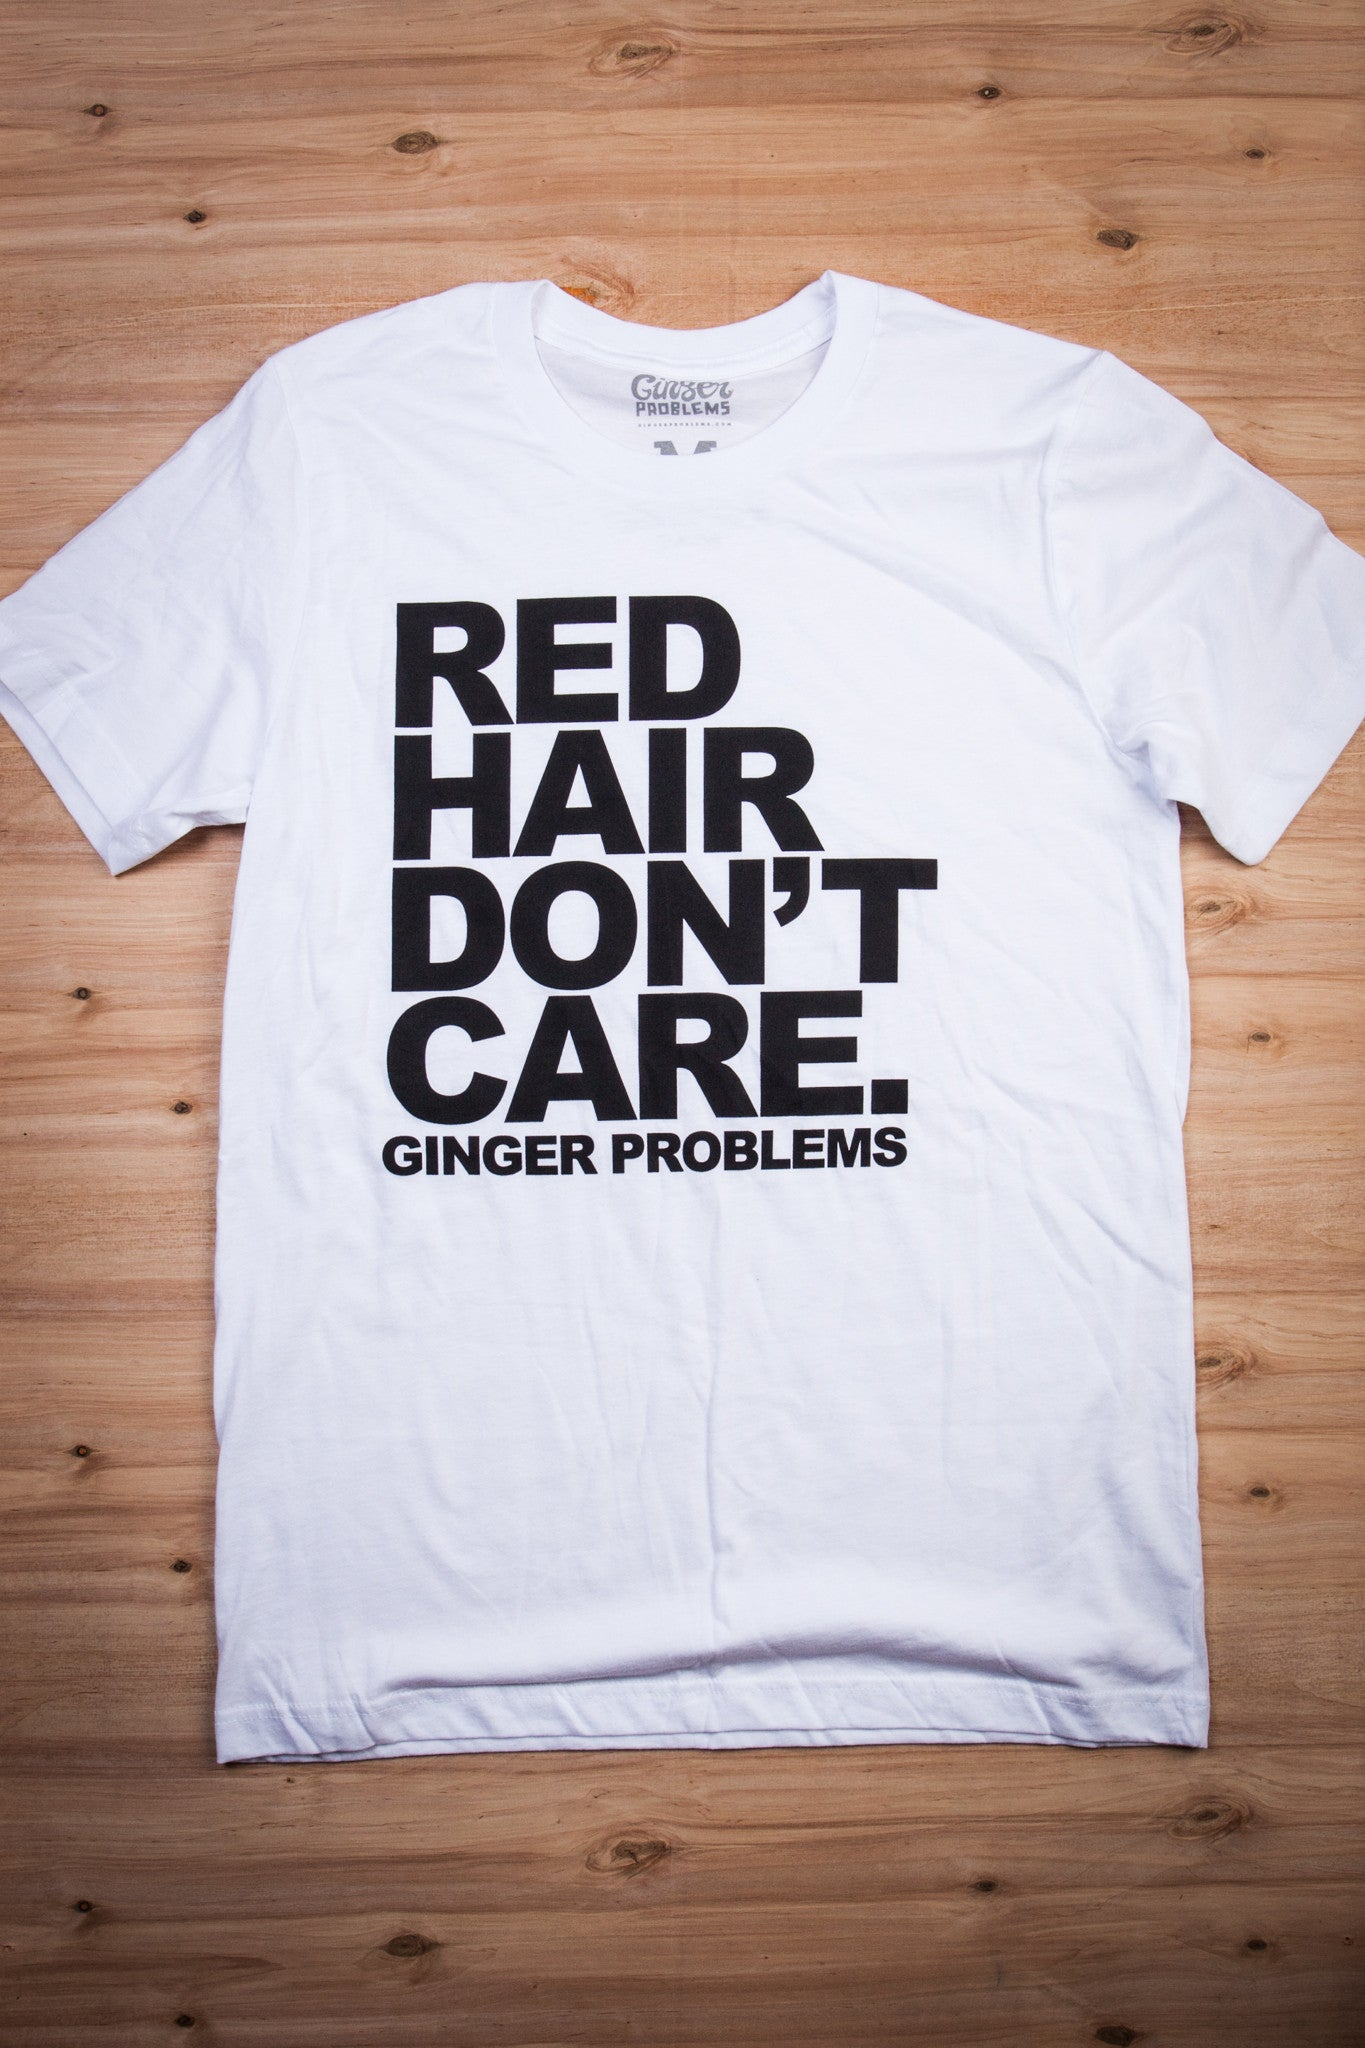 Classic Red Hair Don't Care White Tee Ginger Problems - Red Hair Don't Care